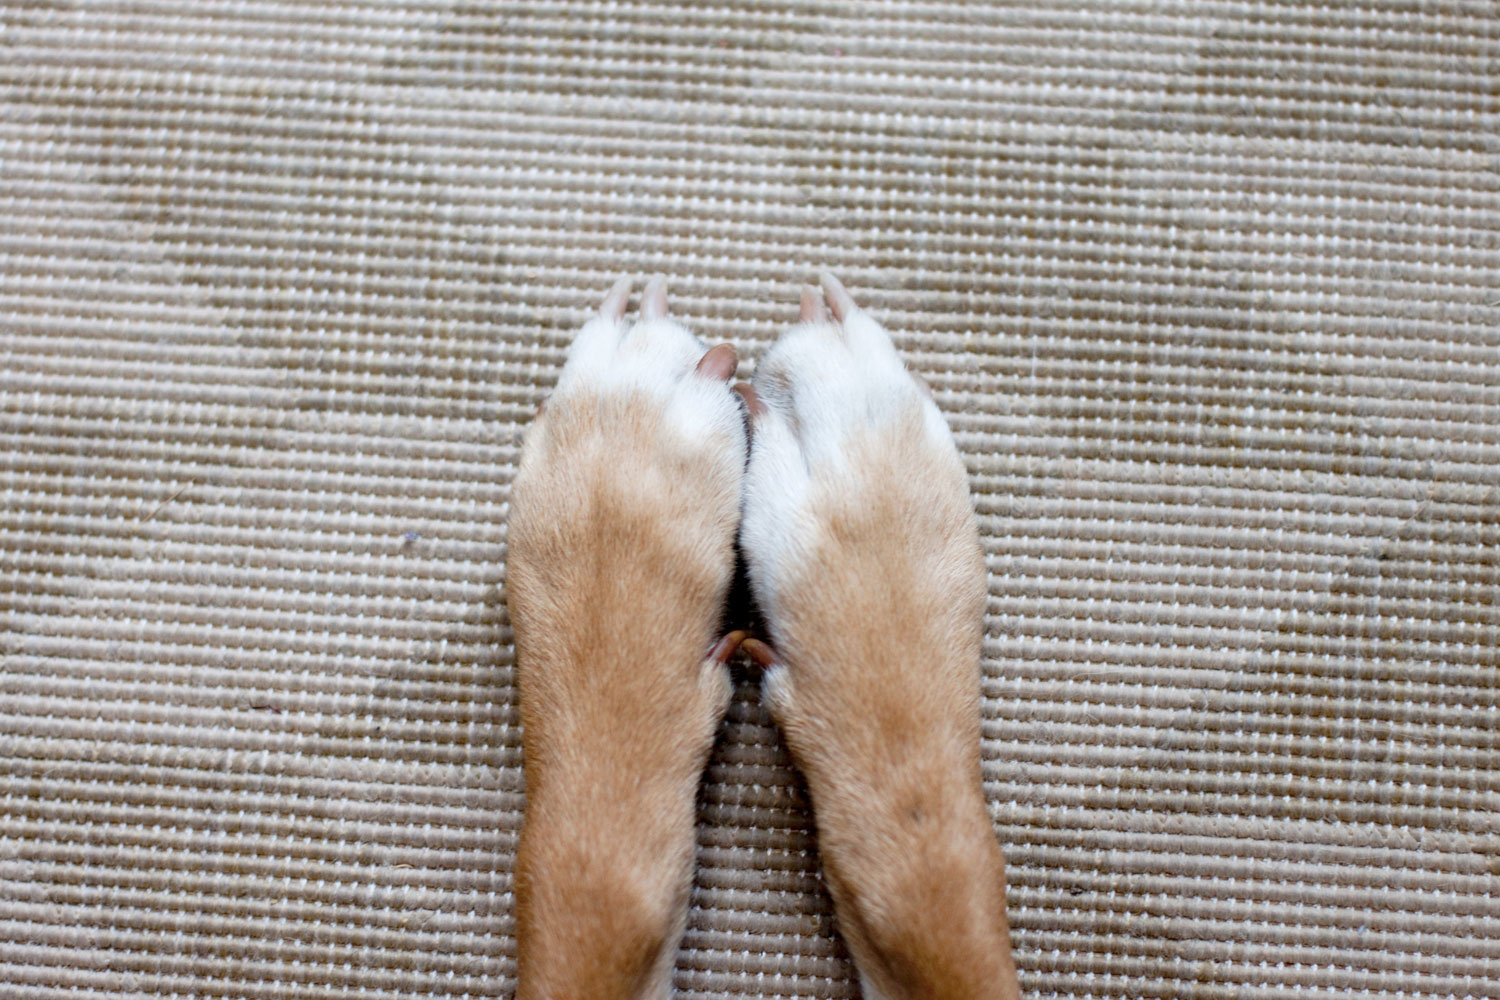 Zoe 'n Me {a dog blog} Best foot forward | Jordan benShea | Santa Barbara, California